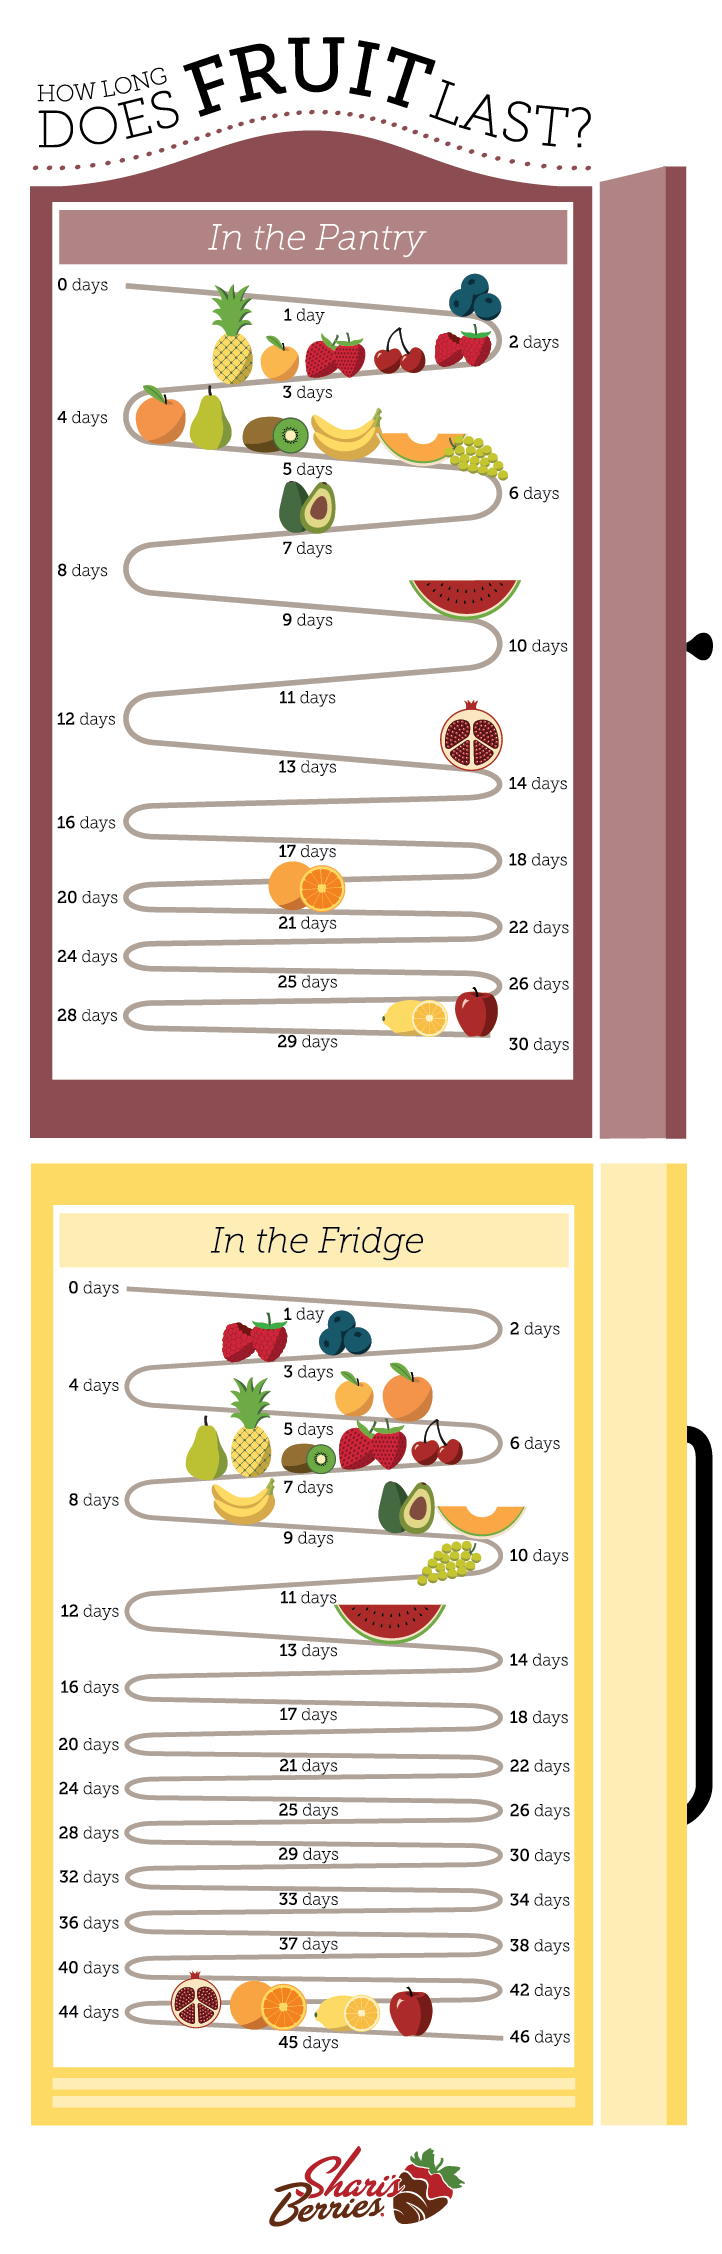 How Long Does Fruit Last